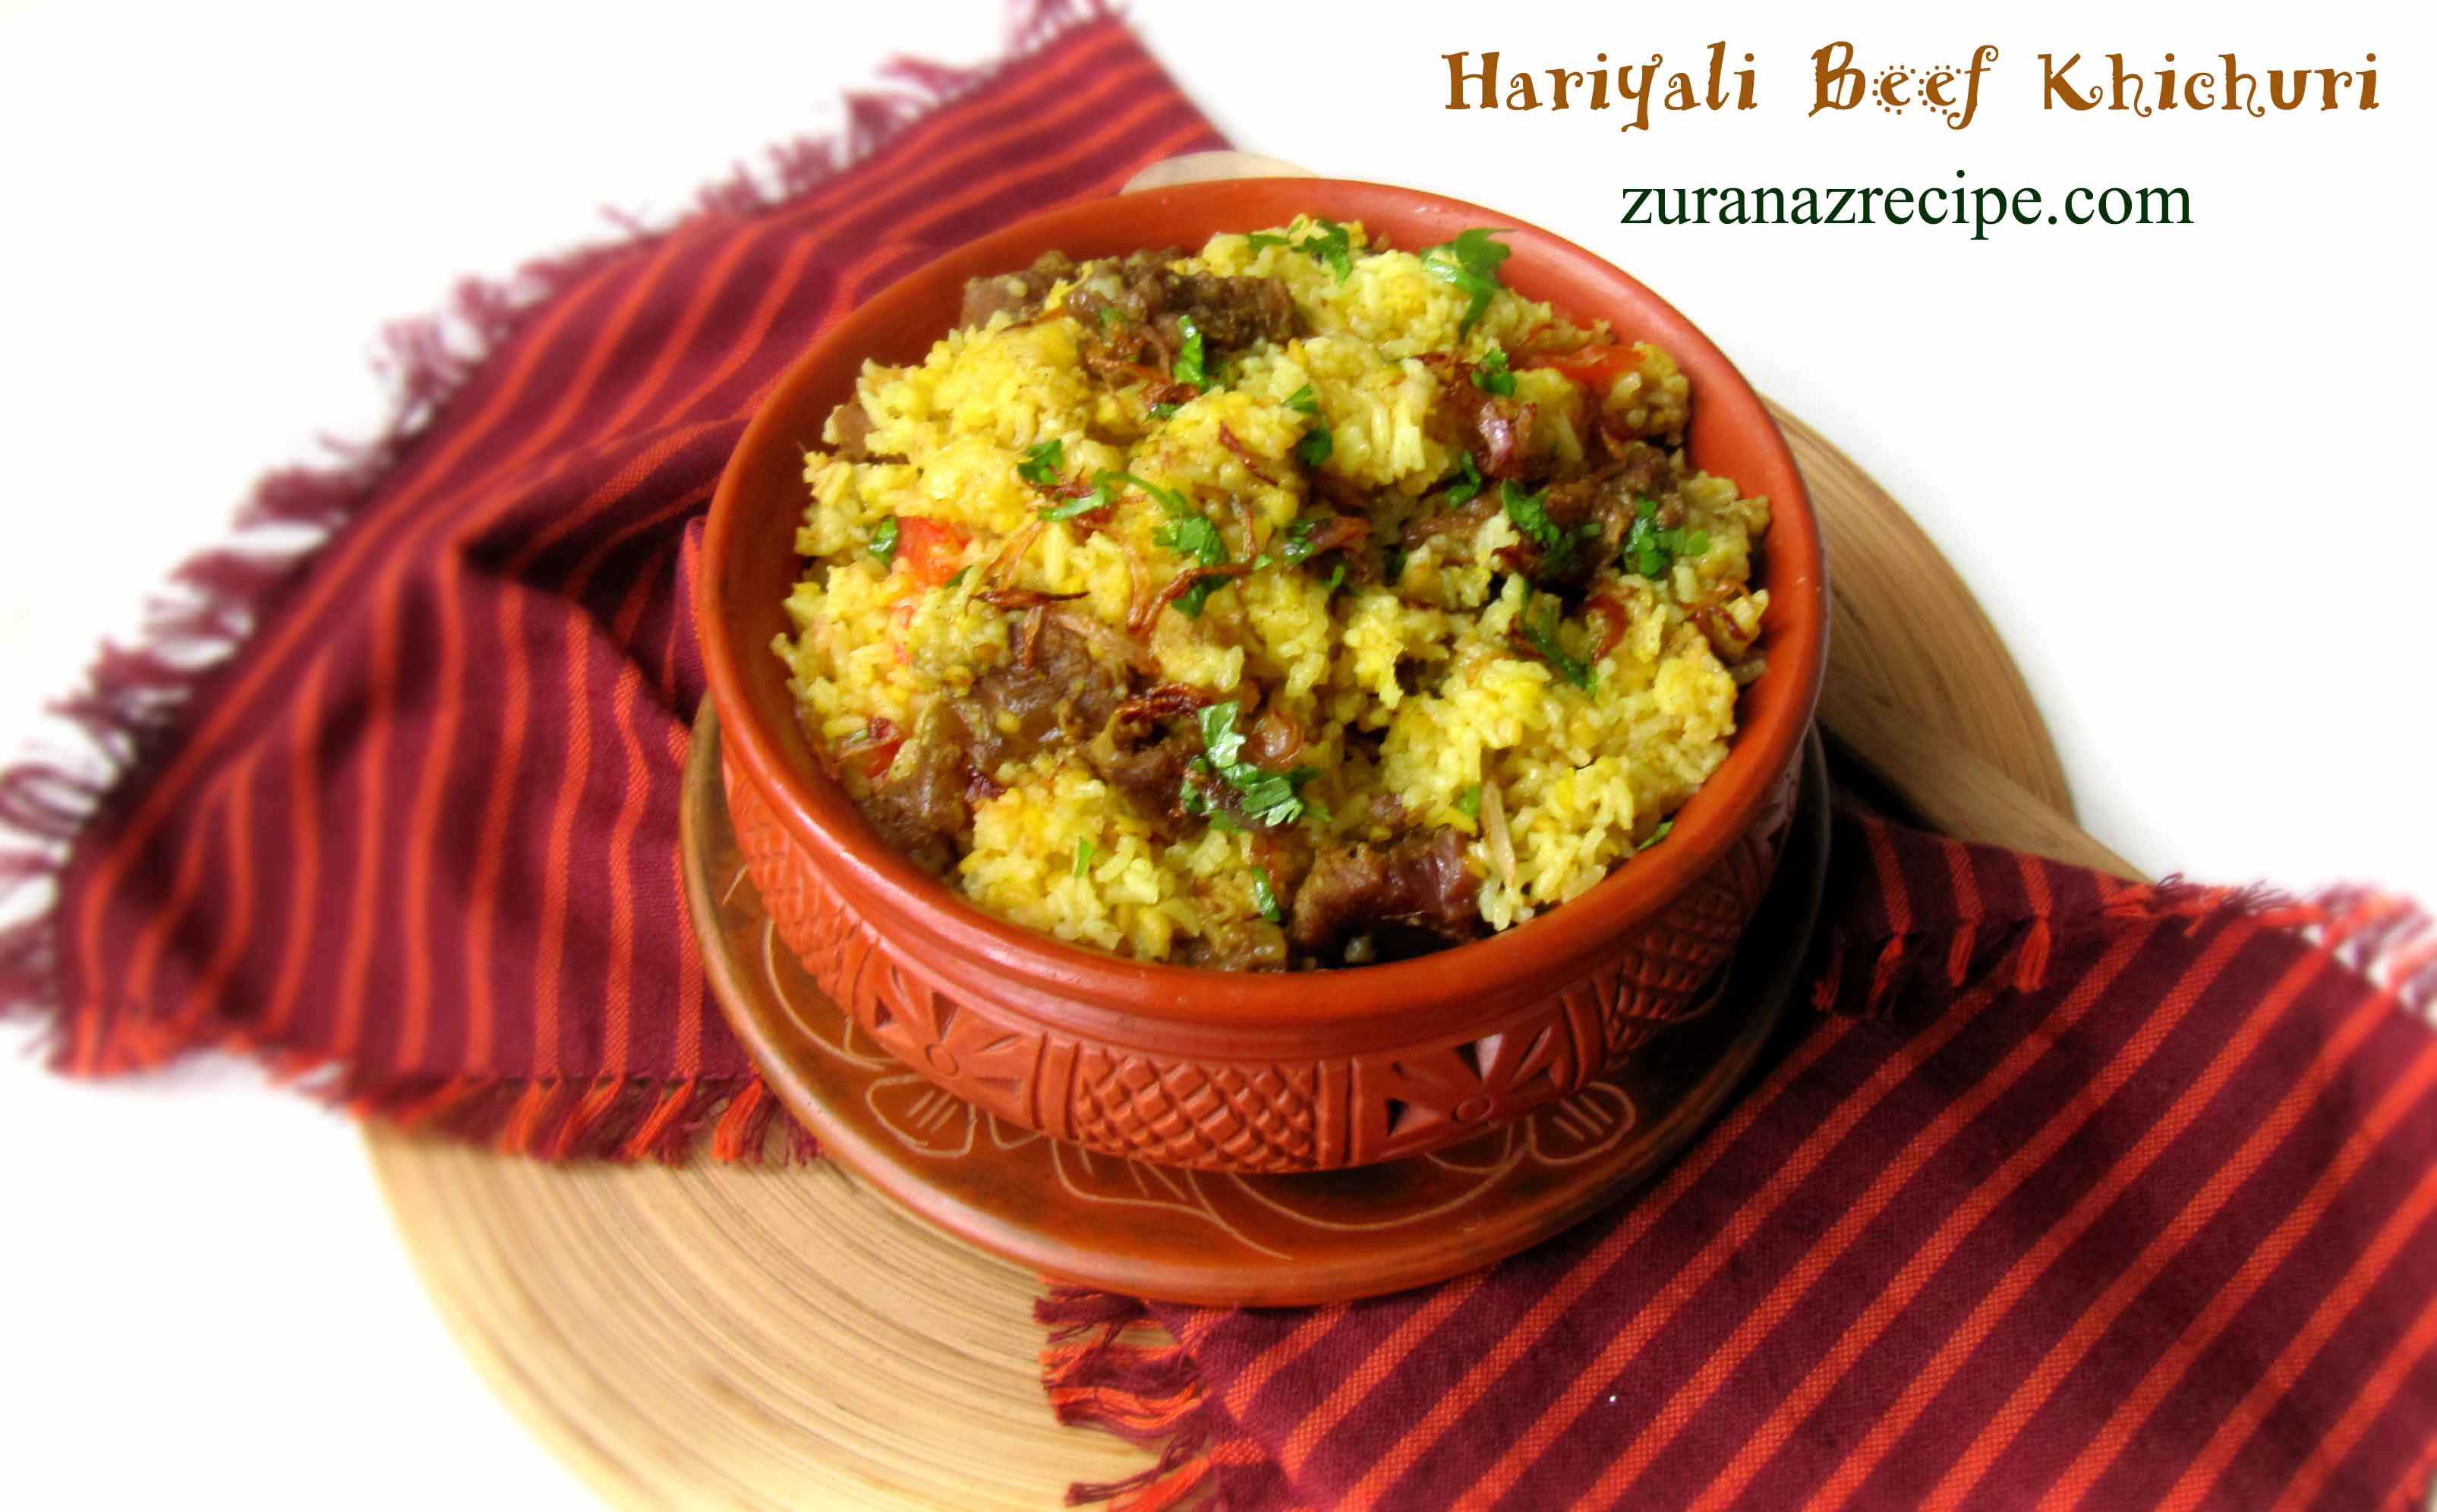 Sobji khichurivegetable bhuna khichurivuna khichuri bangla related recipes forumfinder Images